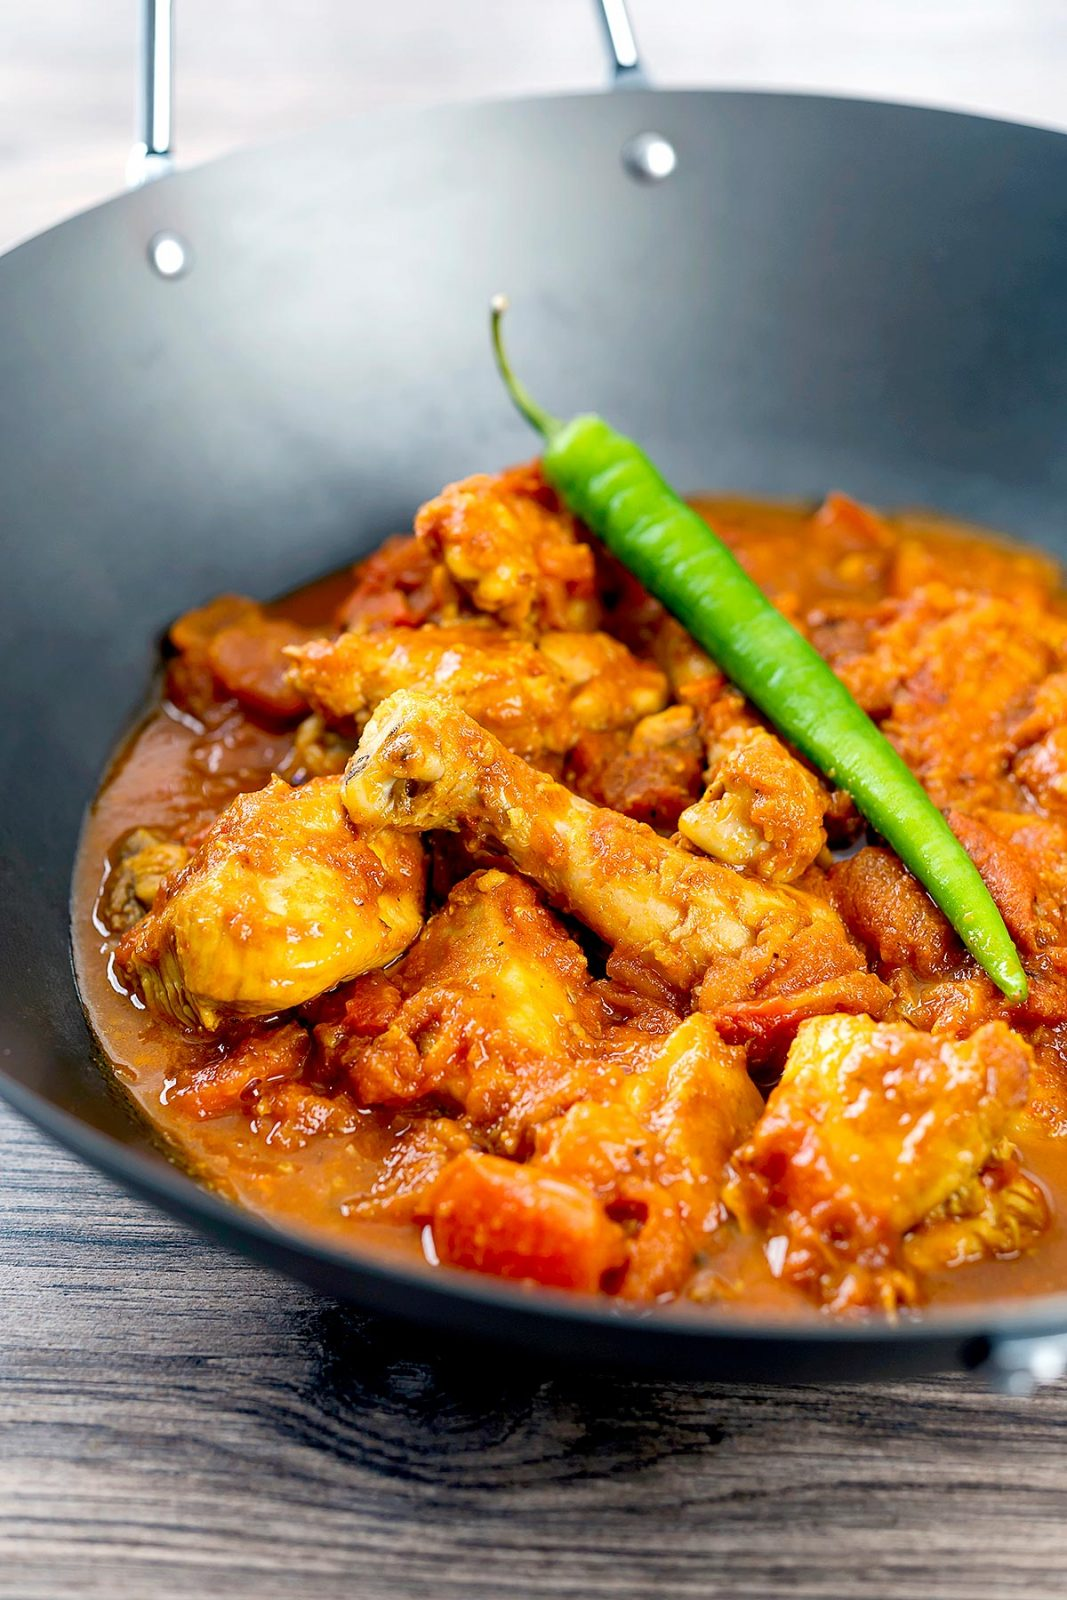 Tomato chicken karahi in a black wok topped with a single green chillie.